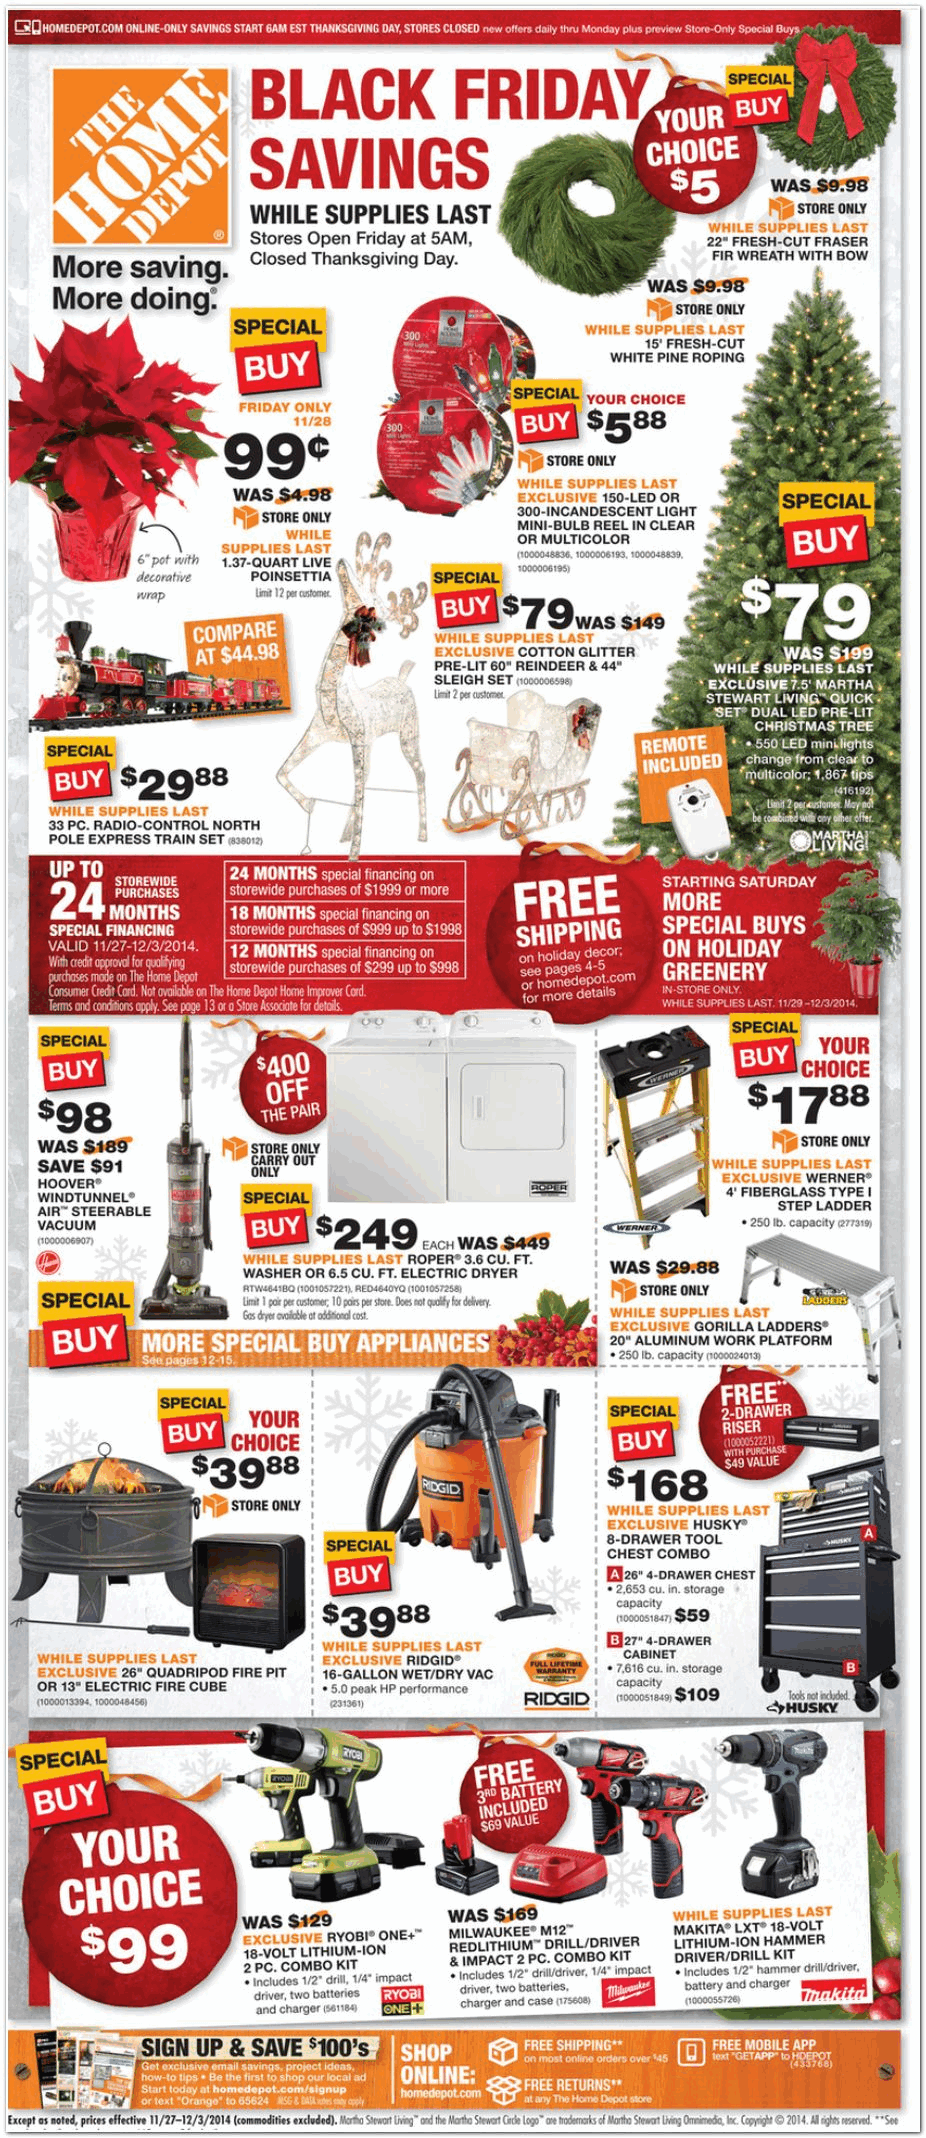 home depot 2014 black friday ad black friday archive black friday ads from the past. Black Bedroom Furniture Sets. Home Design Ideas